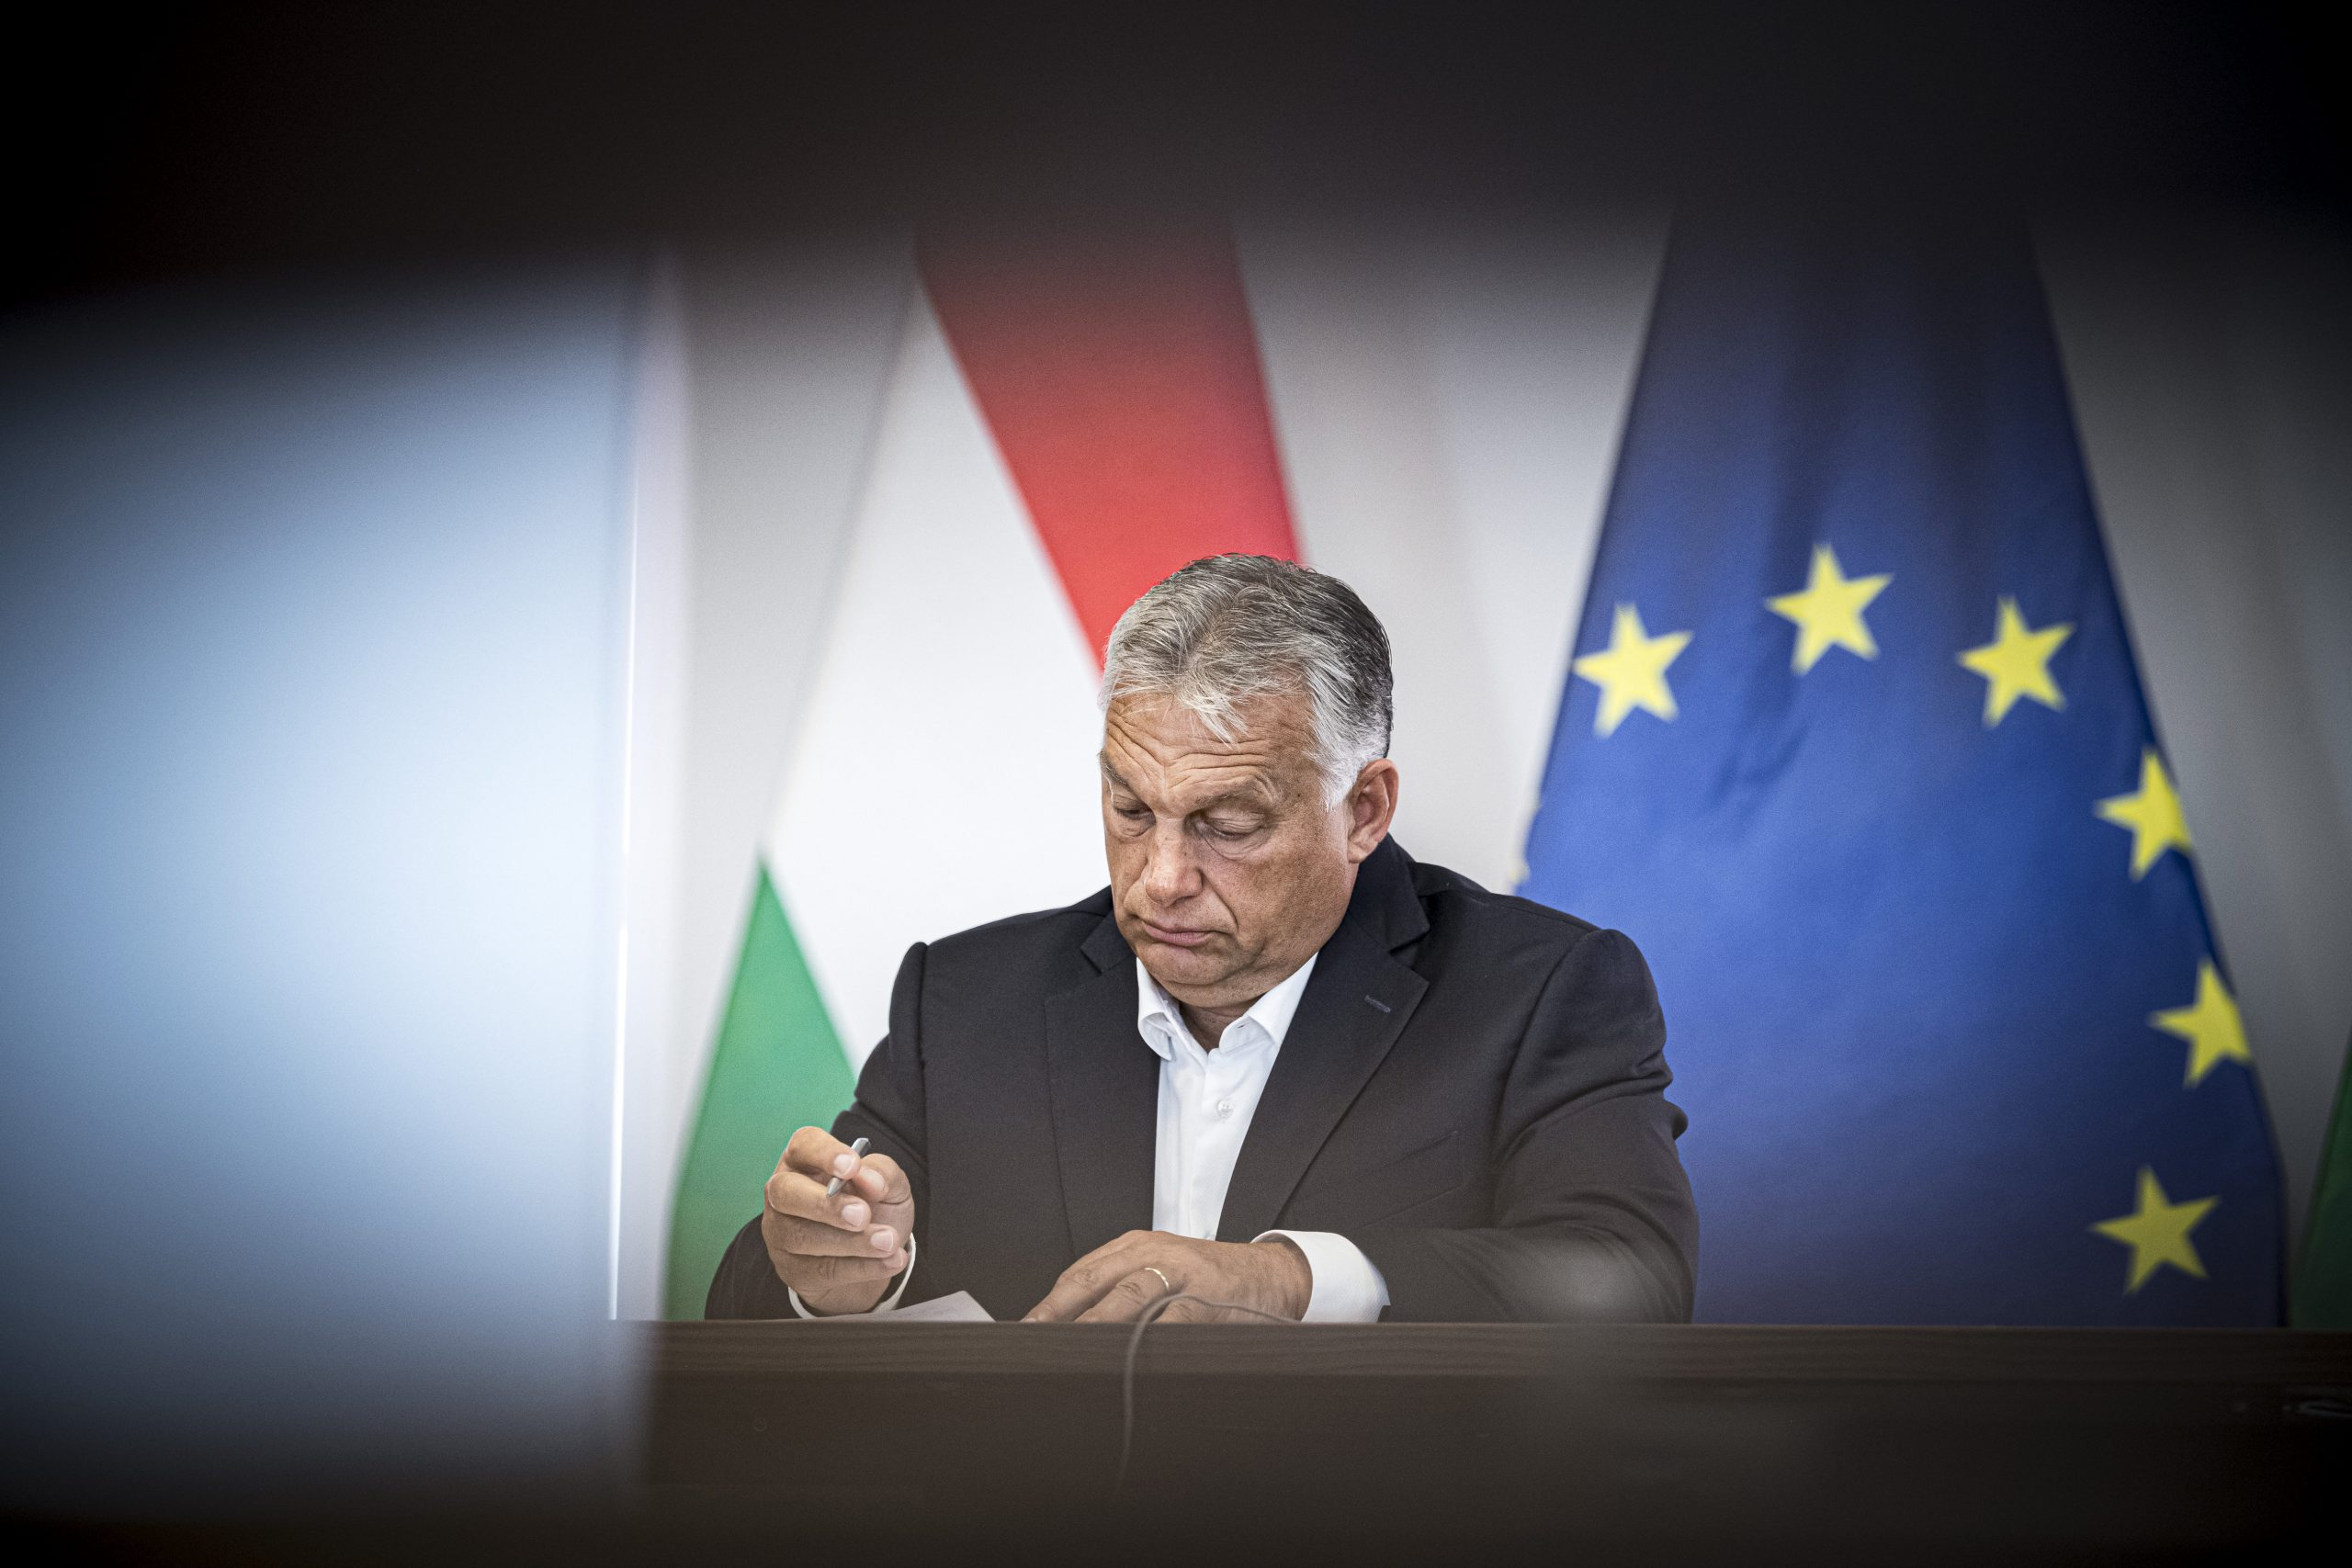 Prime Minister Orbán: Hungary's EU Budget Veto in Line with Treaties